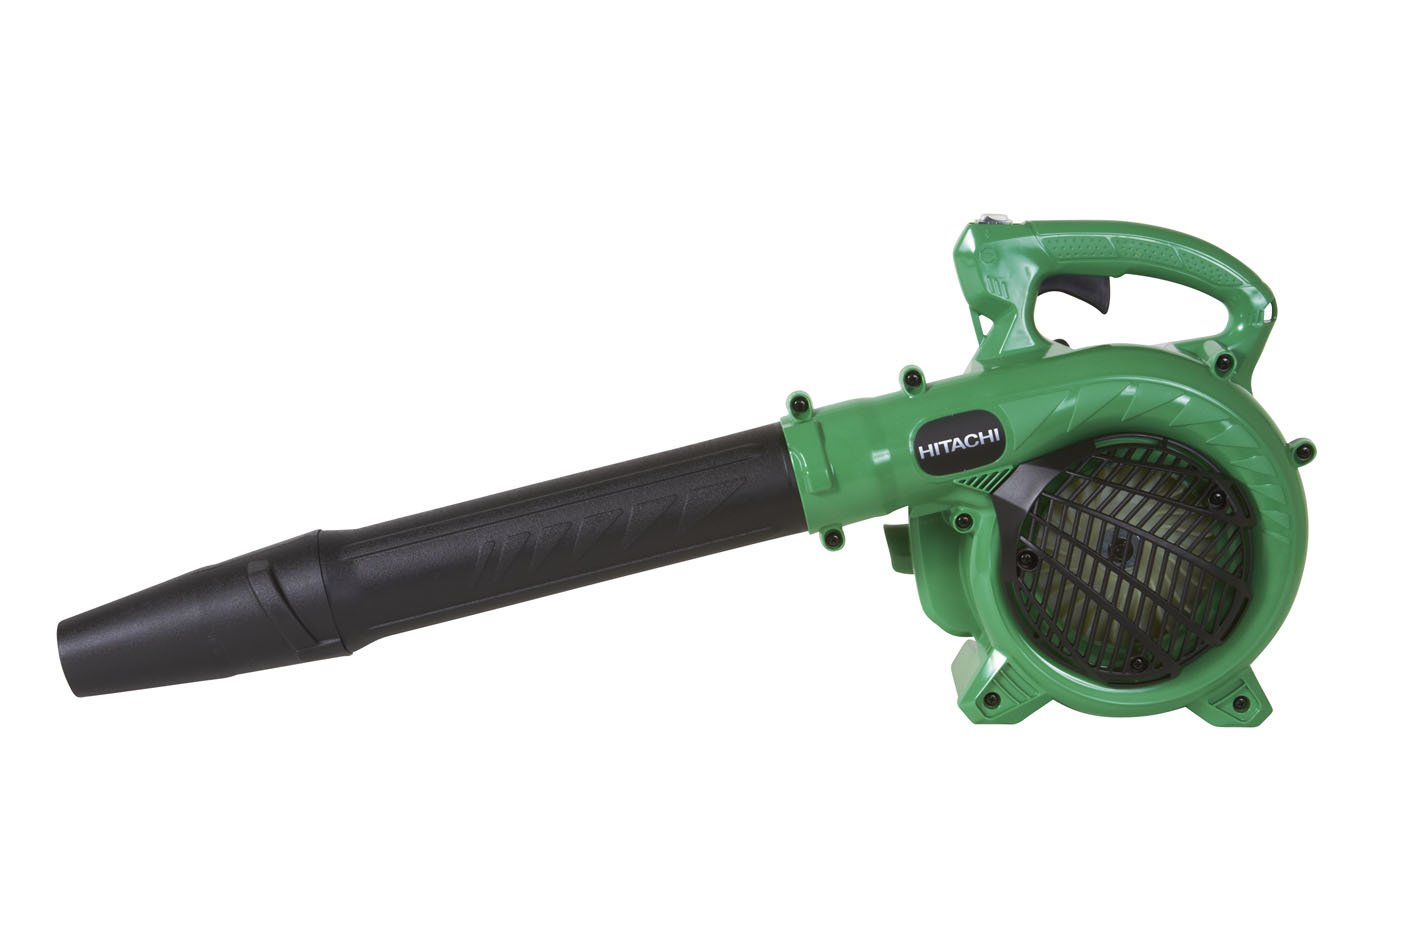 Top 10 Best Leaf Blowers (2020 Reviews & Buying Guide) 1